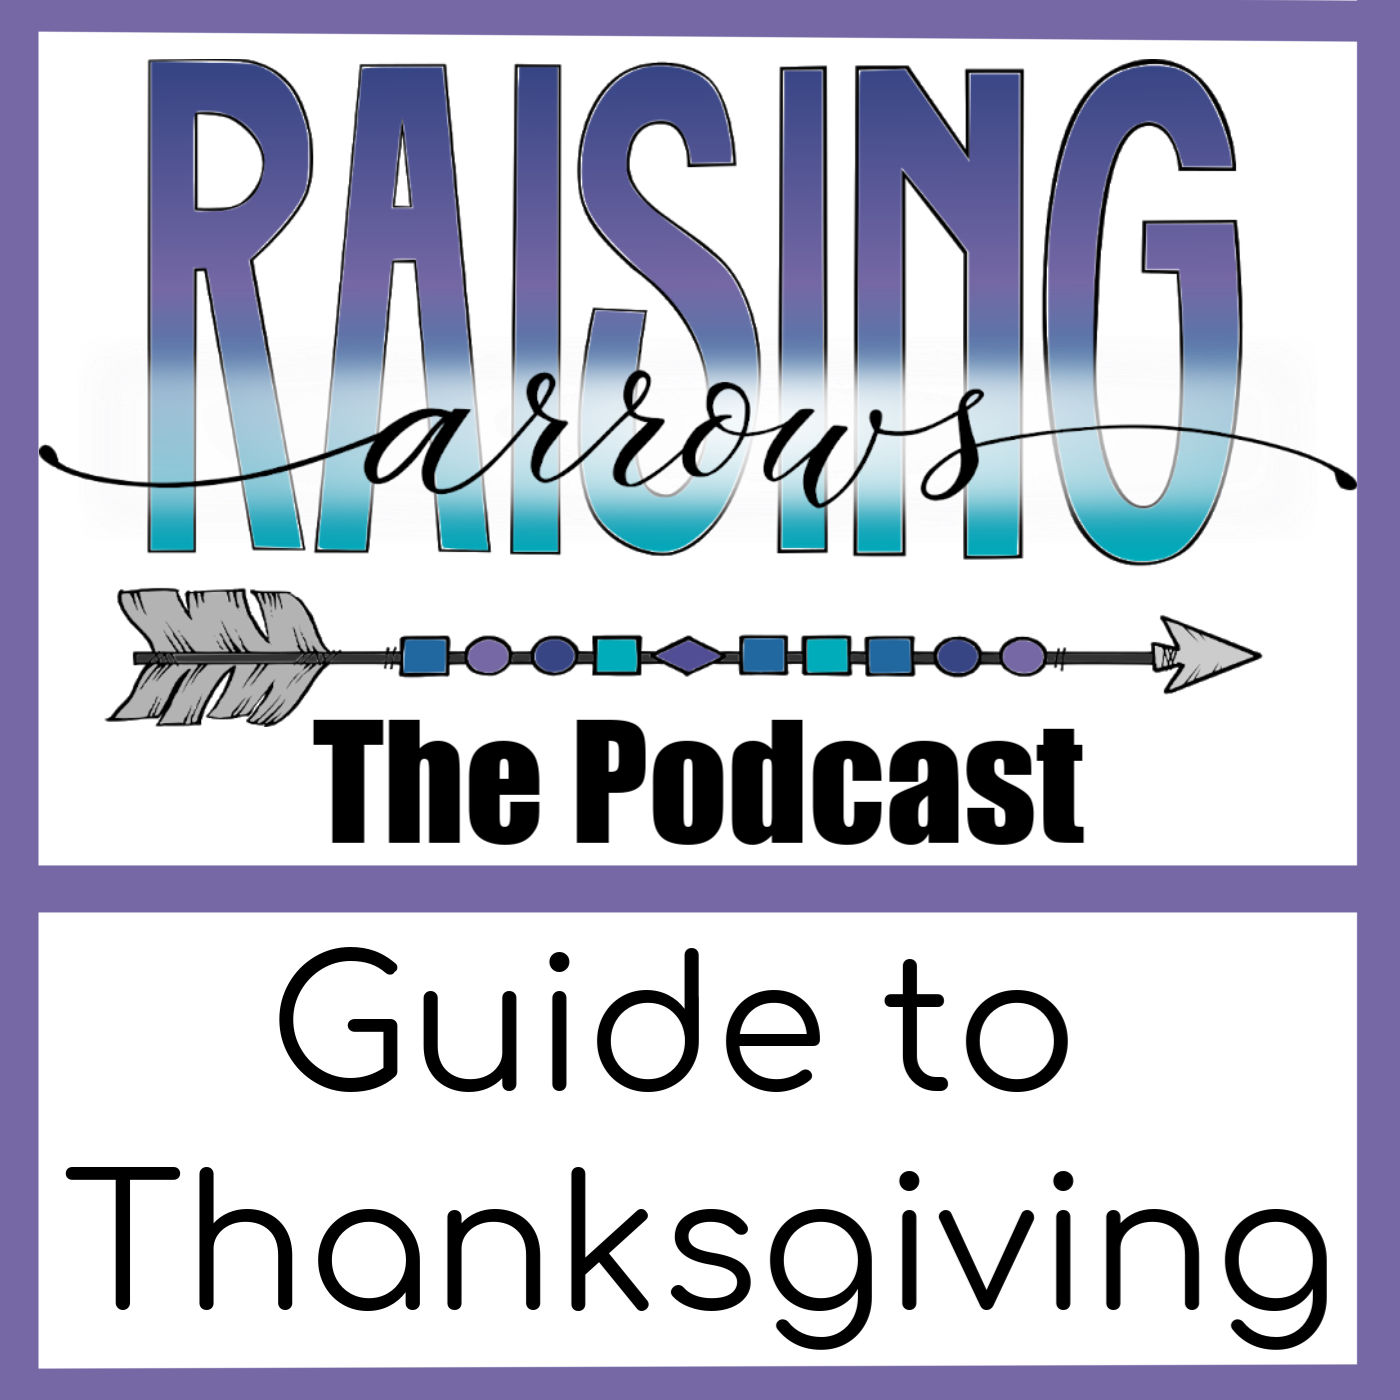 Control the chaos and have a blessed Thanksgiving with this idea-packed podcast guide to a fantastic holiday from a large family mom's perspective!